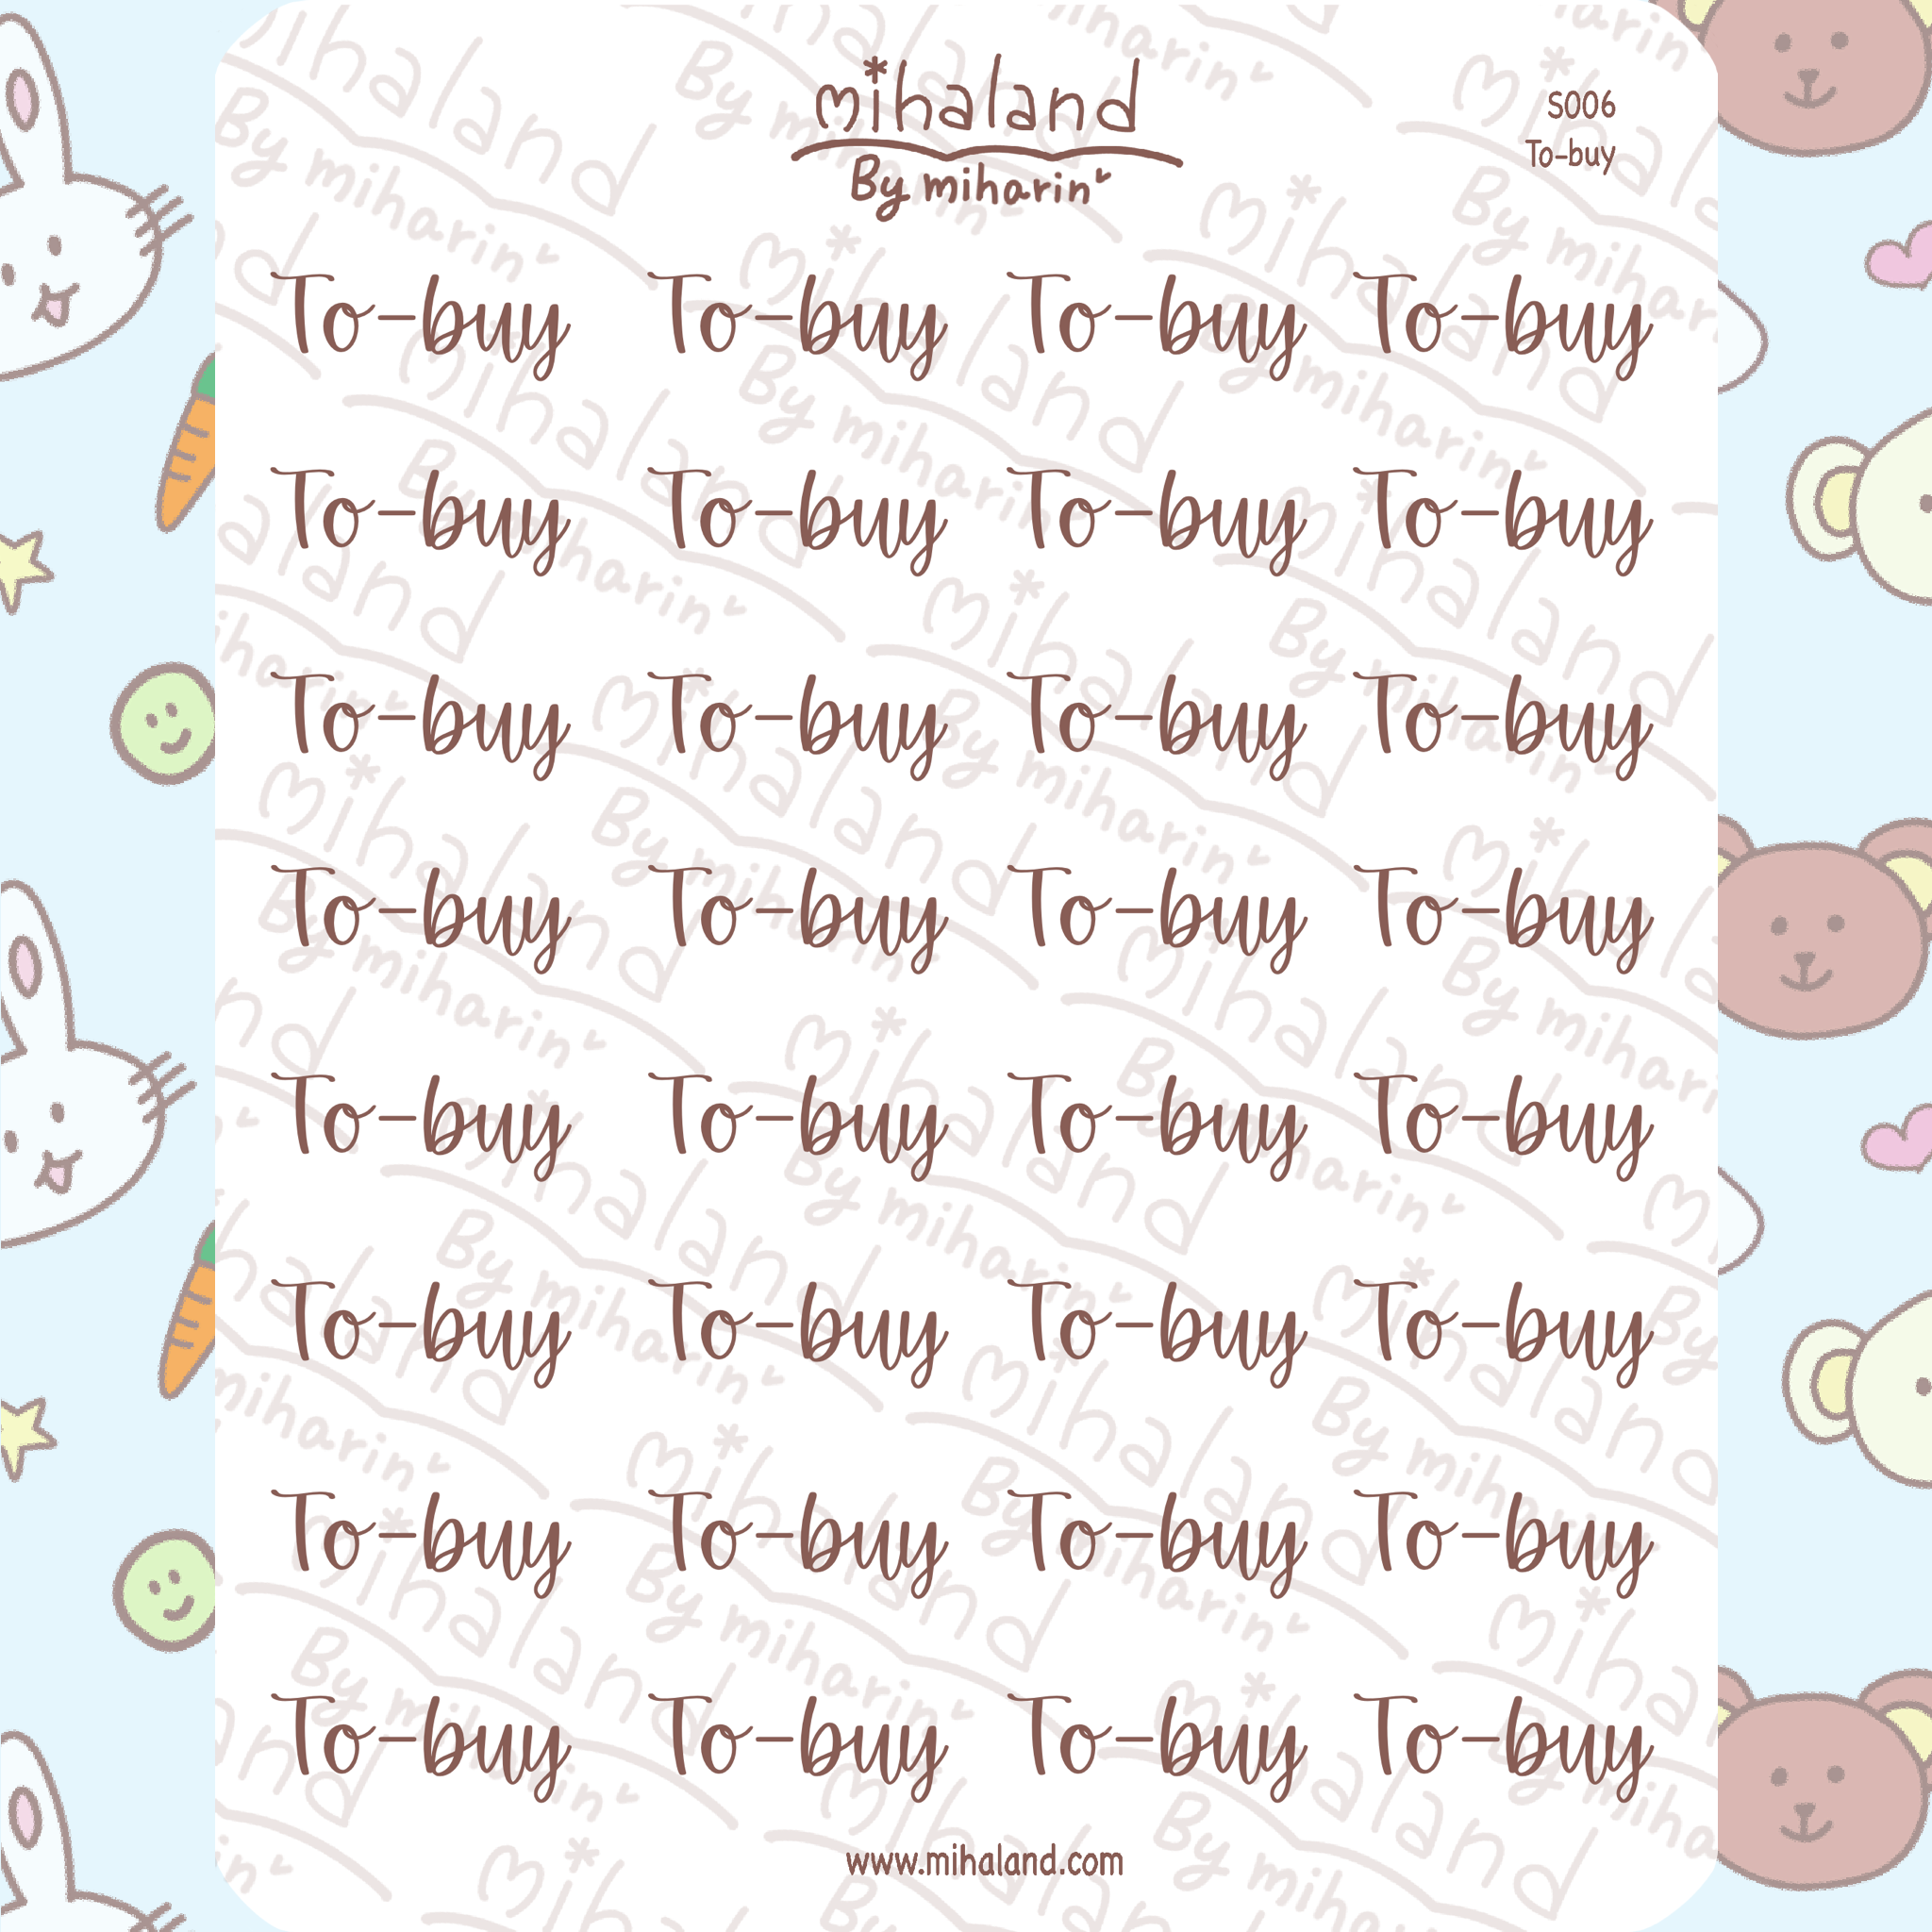 mihaland - To-buy Script Planner Stickers (S006)